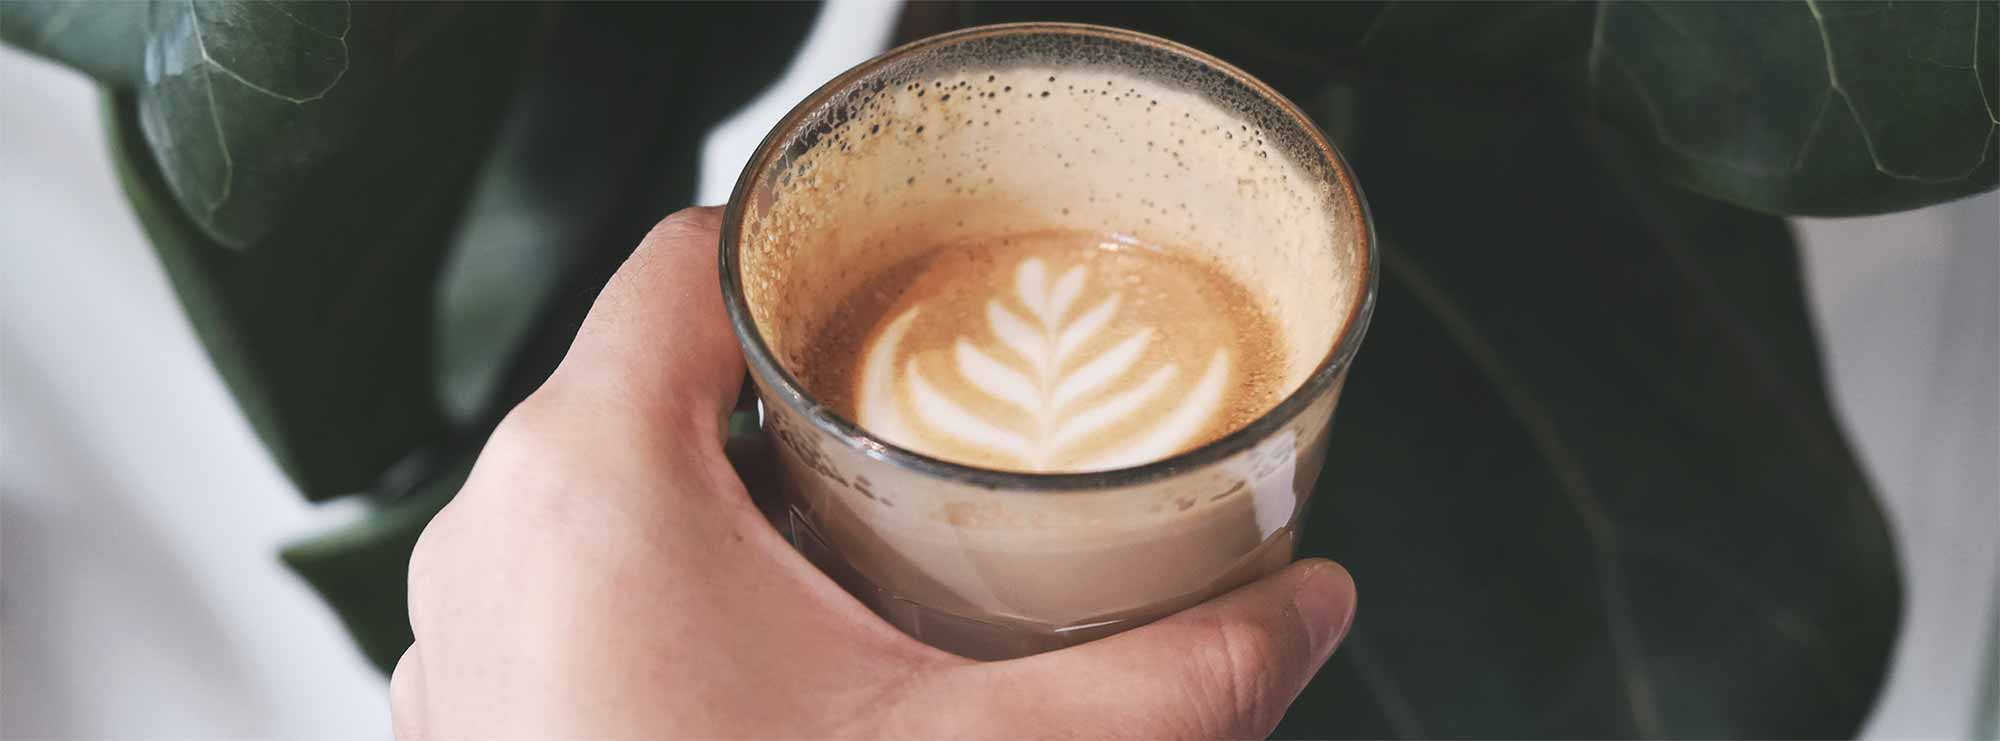 The Rise Of The Coffee Snob